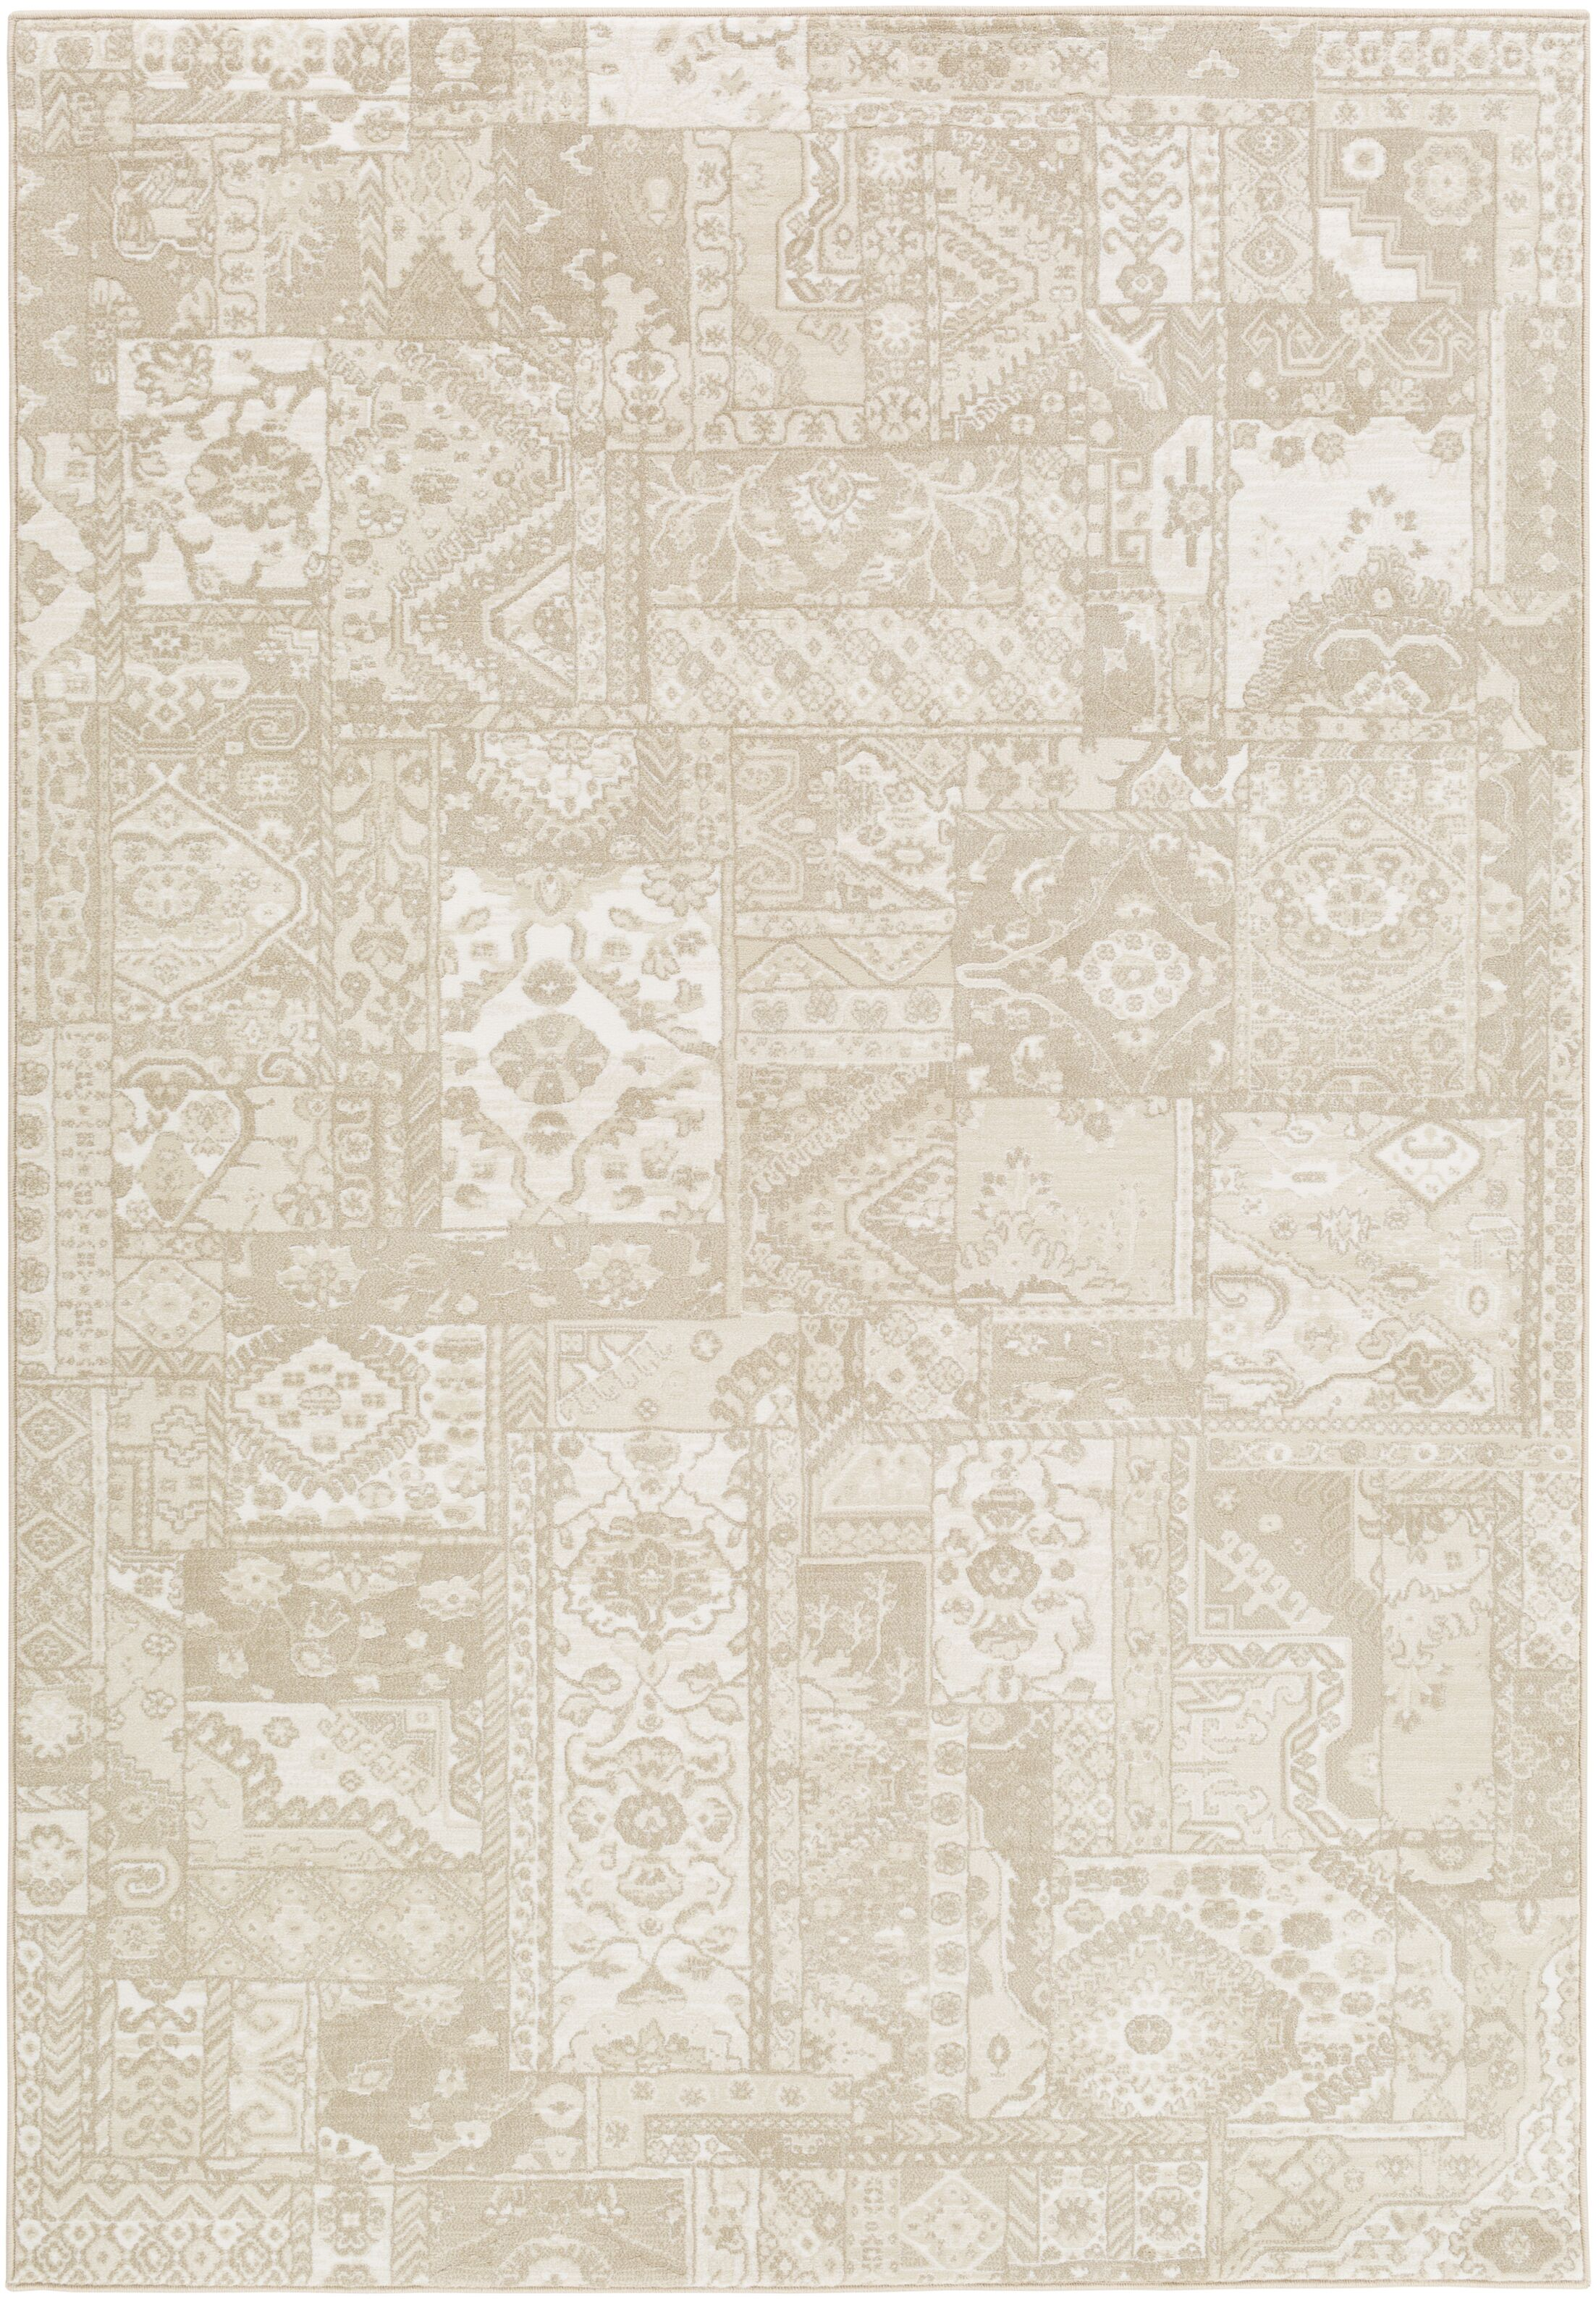 Shenk Brown/Neutral Area Rug Rug Size: Rectangle 5'3